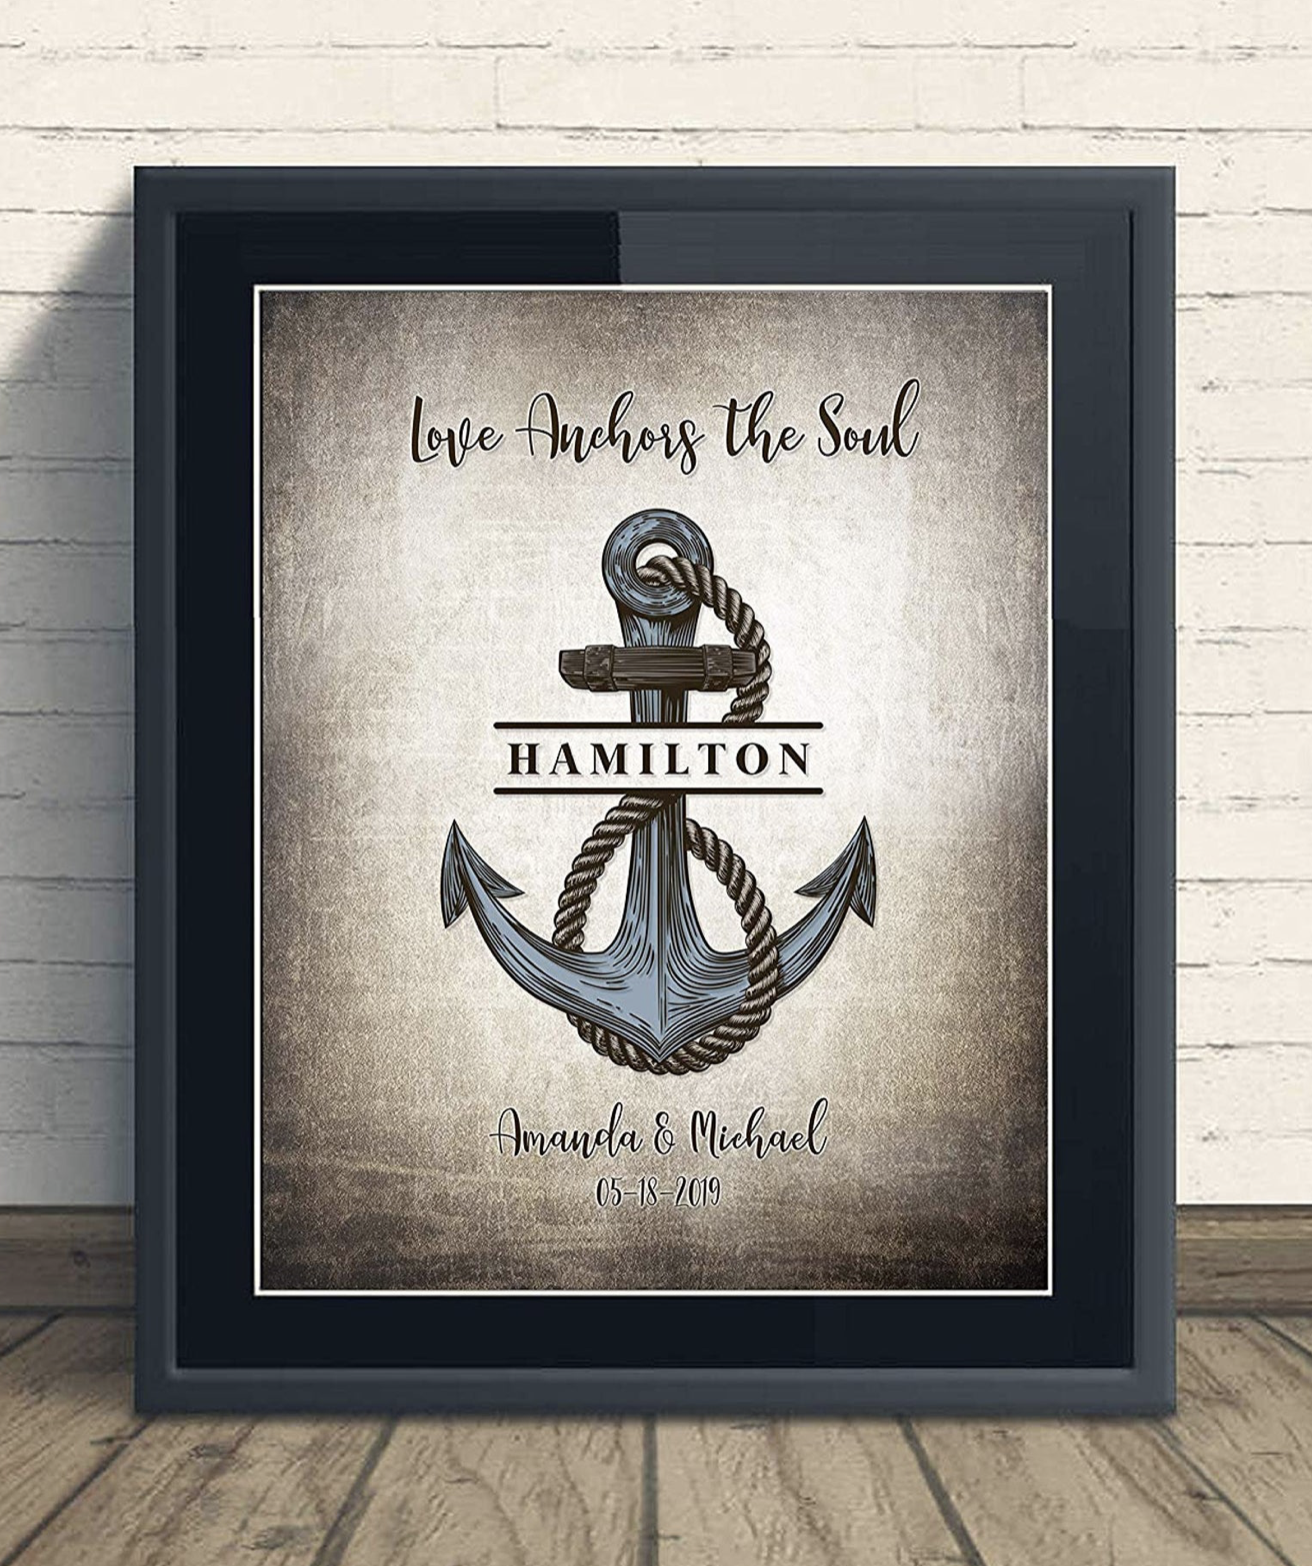 Love Anchors The Soul Sign Personalized With Couple's Name